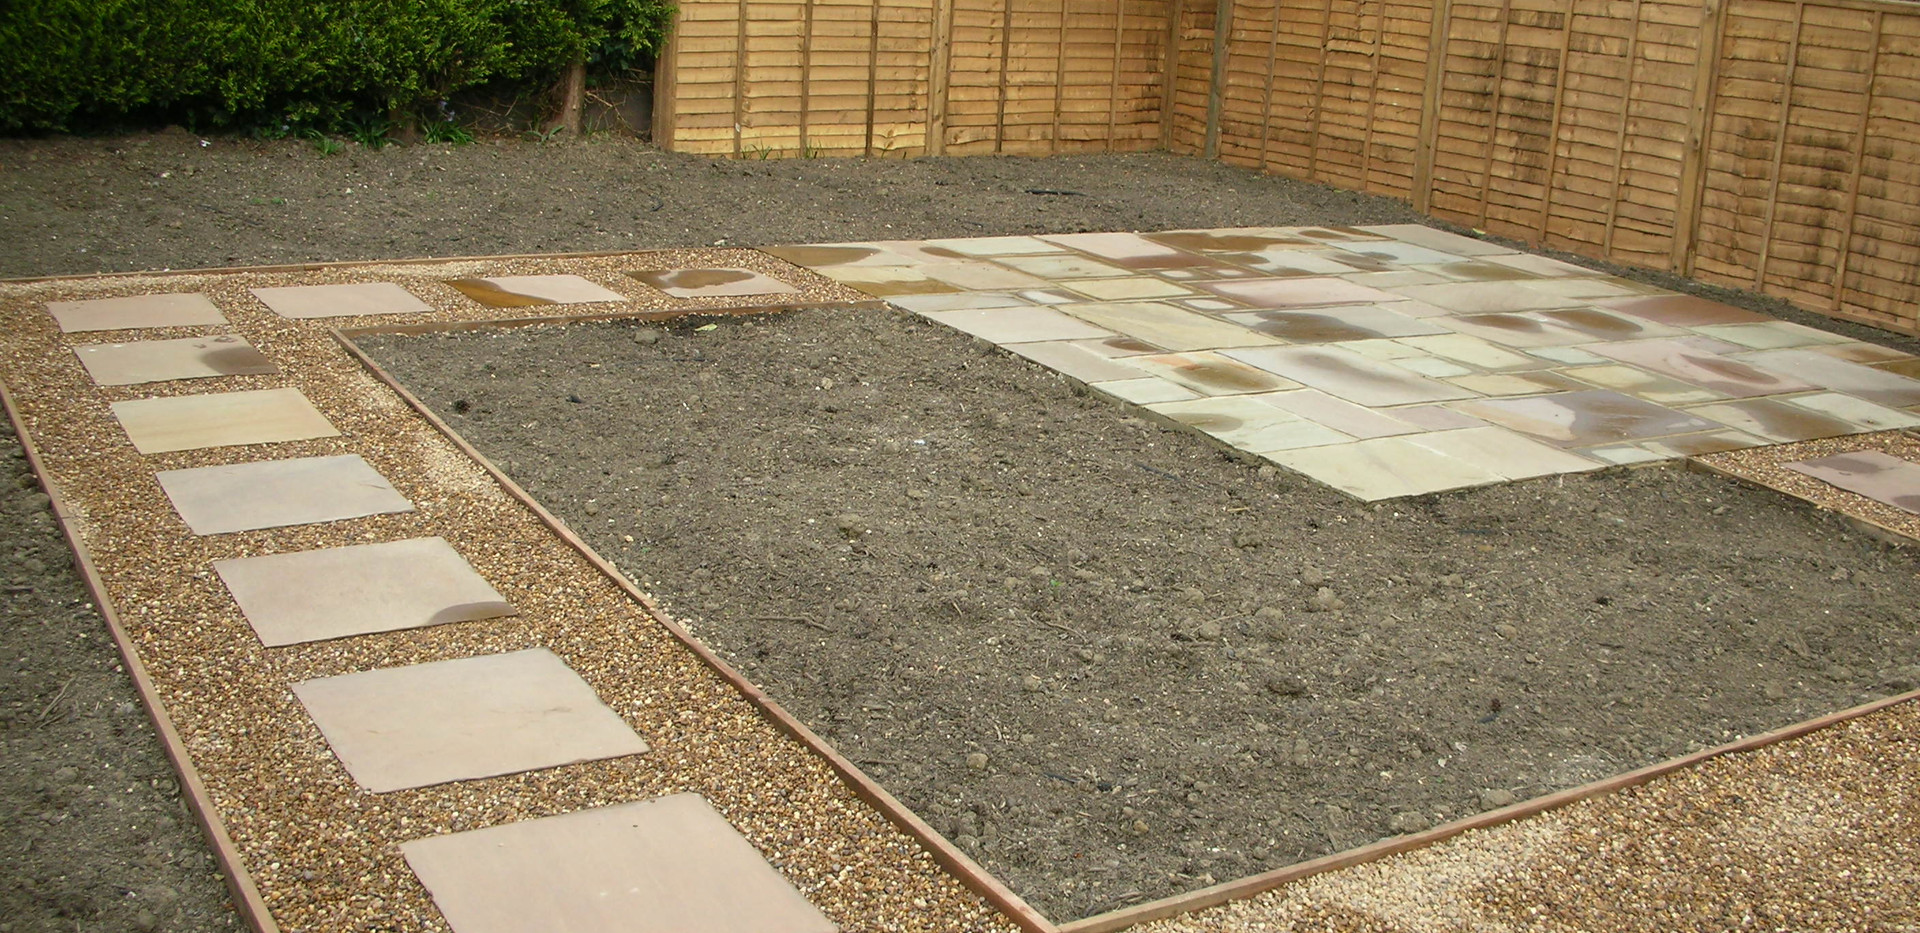 Raj Sandstone Paving, 10mm Shingle, Soil Mix & Fence Panels